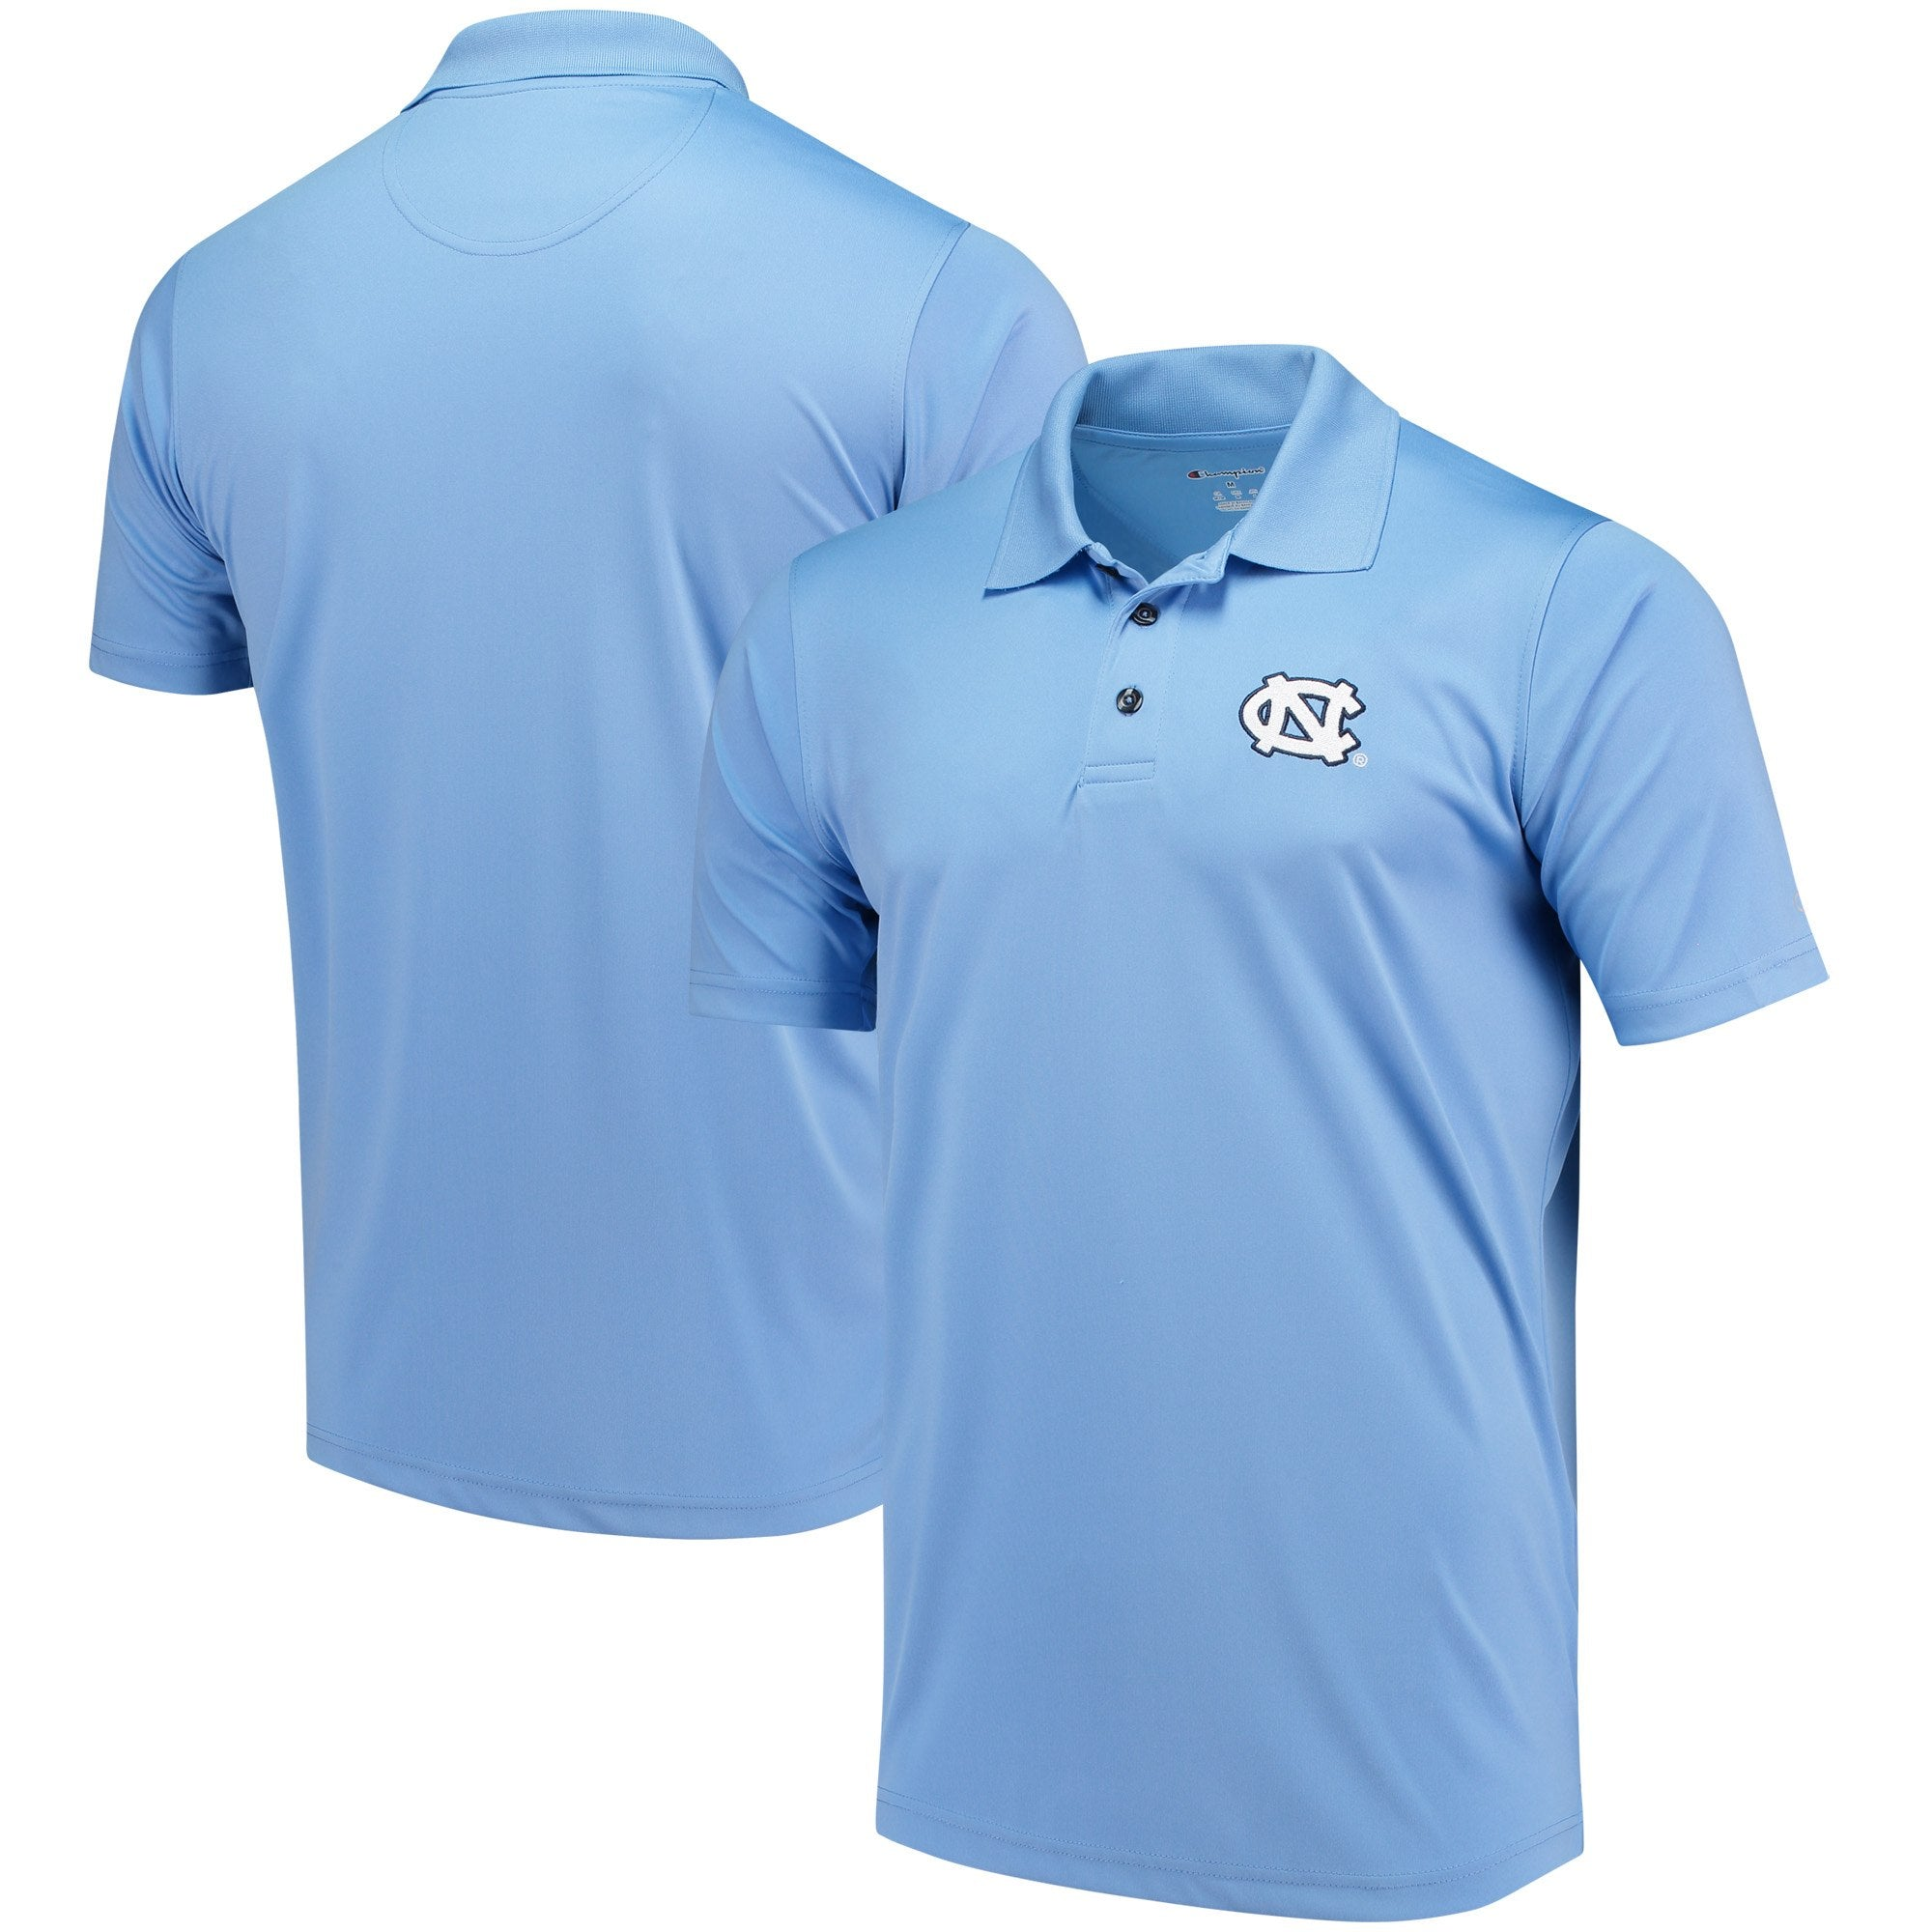 North Carolina Tar Heels Champion Solid Interlock Polo - Carolina Blue - AtlanticCoastSports